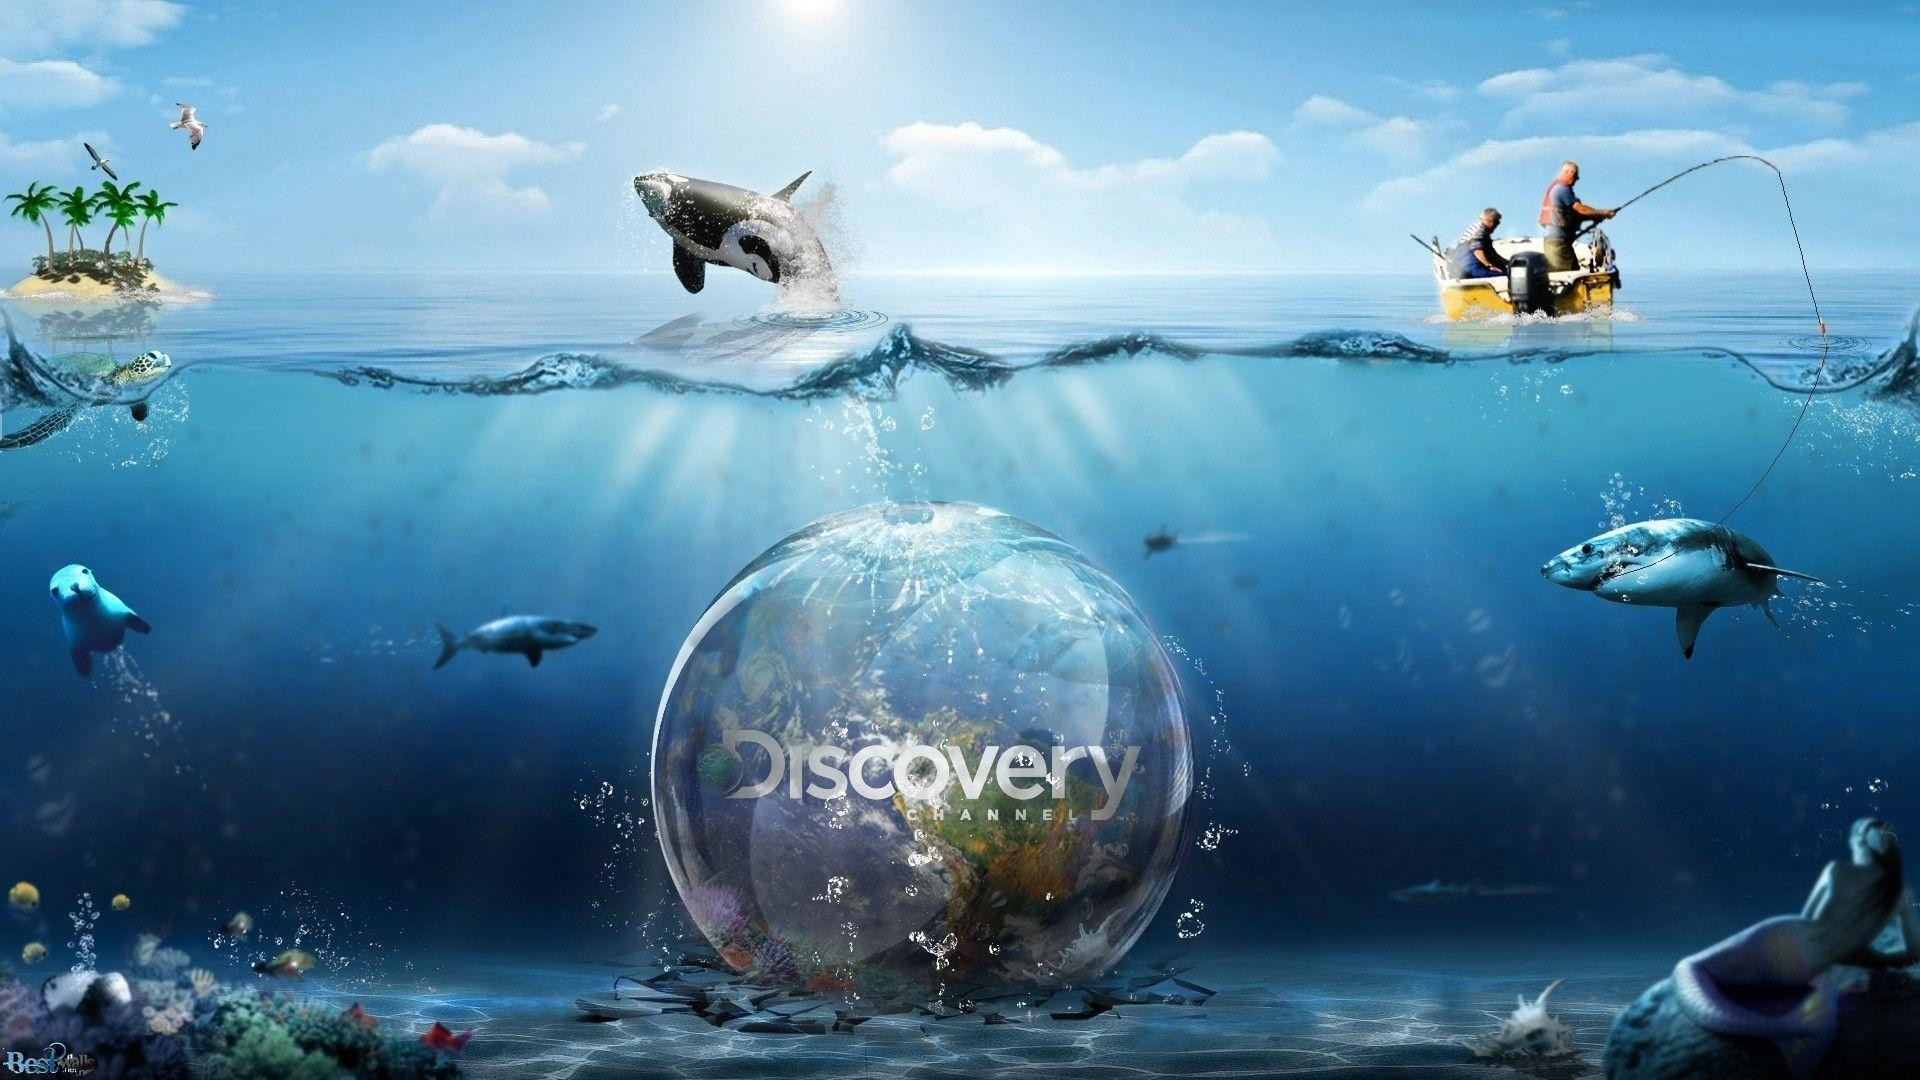 Wallpapers For > Discovery Channel Wallpaper   Data - Discovery Channel Art - HD Wallpaper